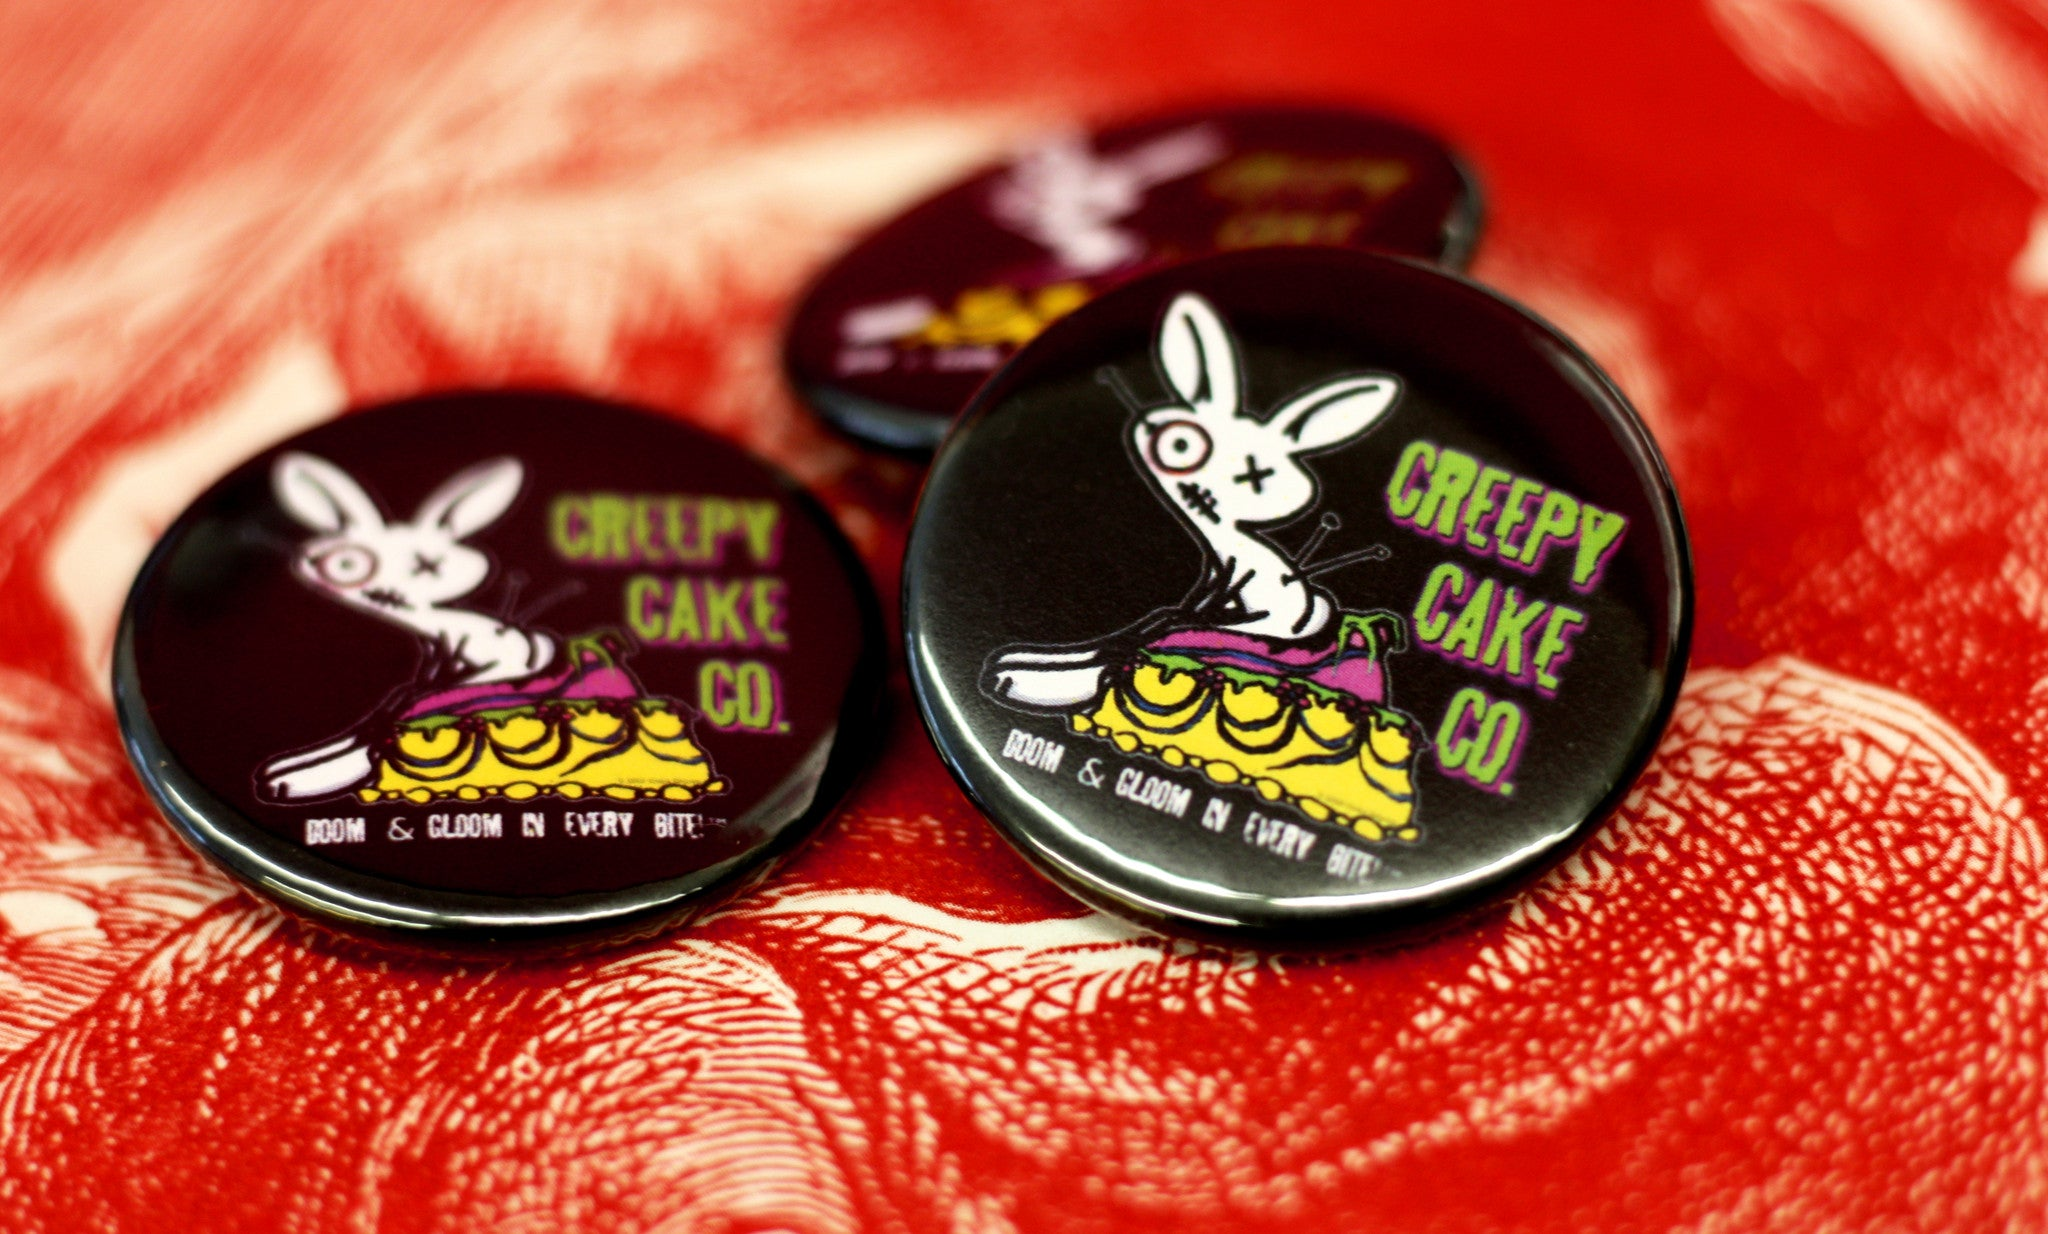 "Creepy Custom Buttons, Creepy Cake Co, Custom 1.5"" Round Buttons, bakery buttons,"